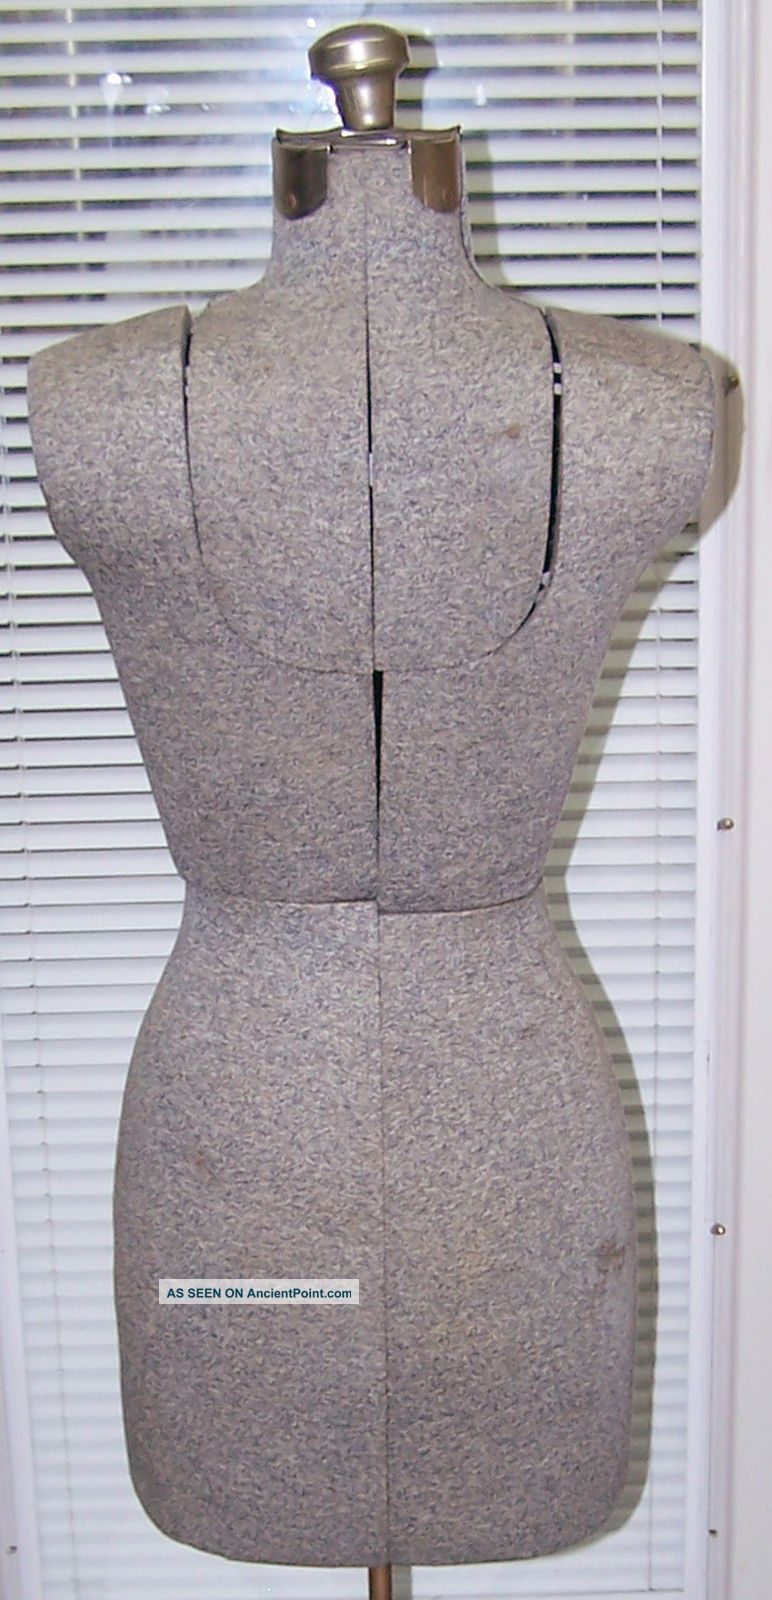 Adjustable Vintage Dress Form W/ Metal Base - Retro Industrial Look Other photo